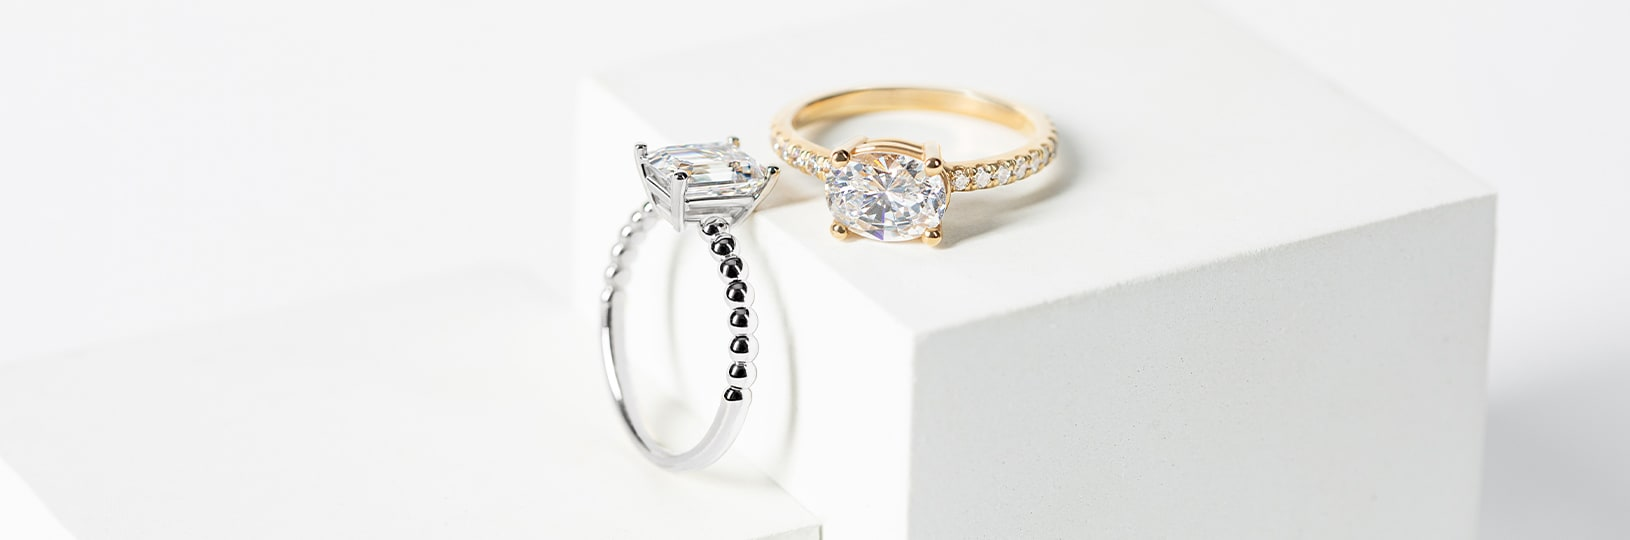 A white gold and a yellow gold engagement ring